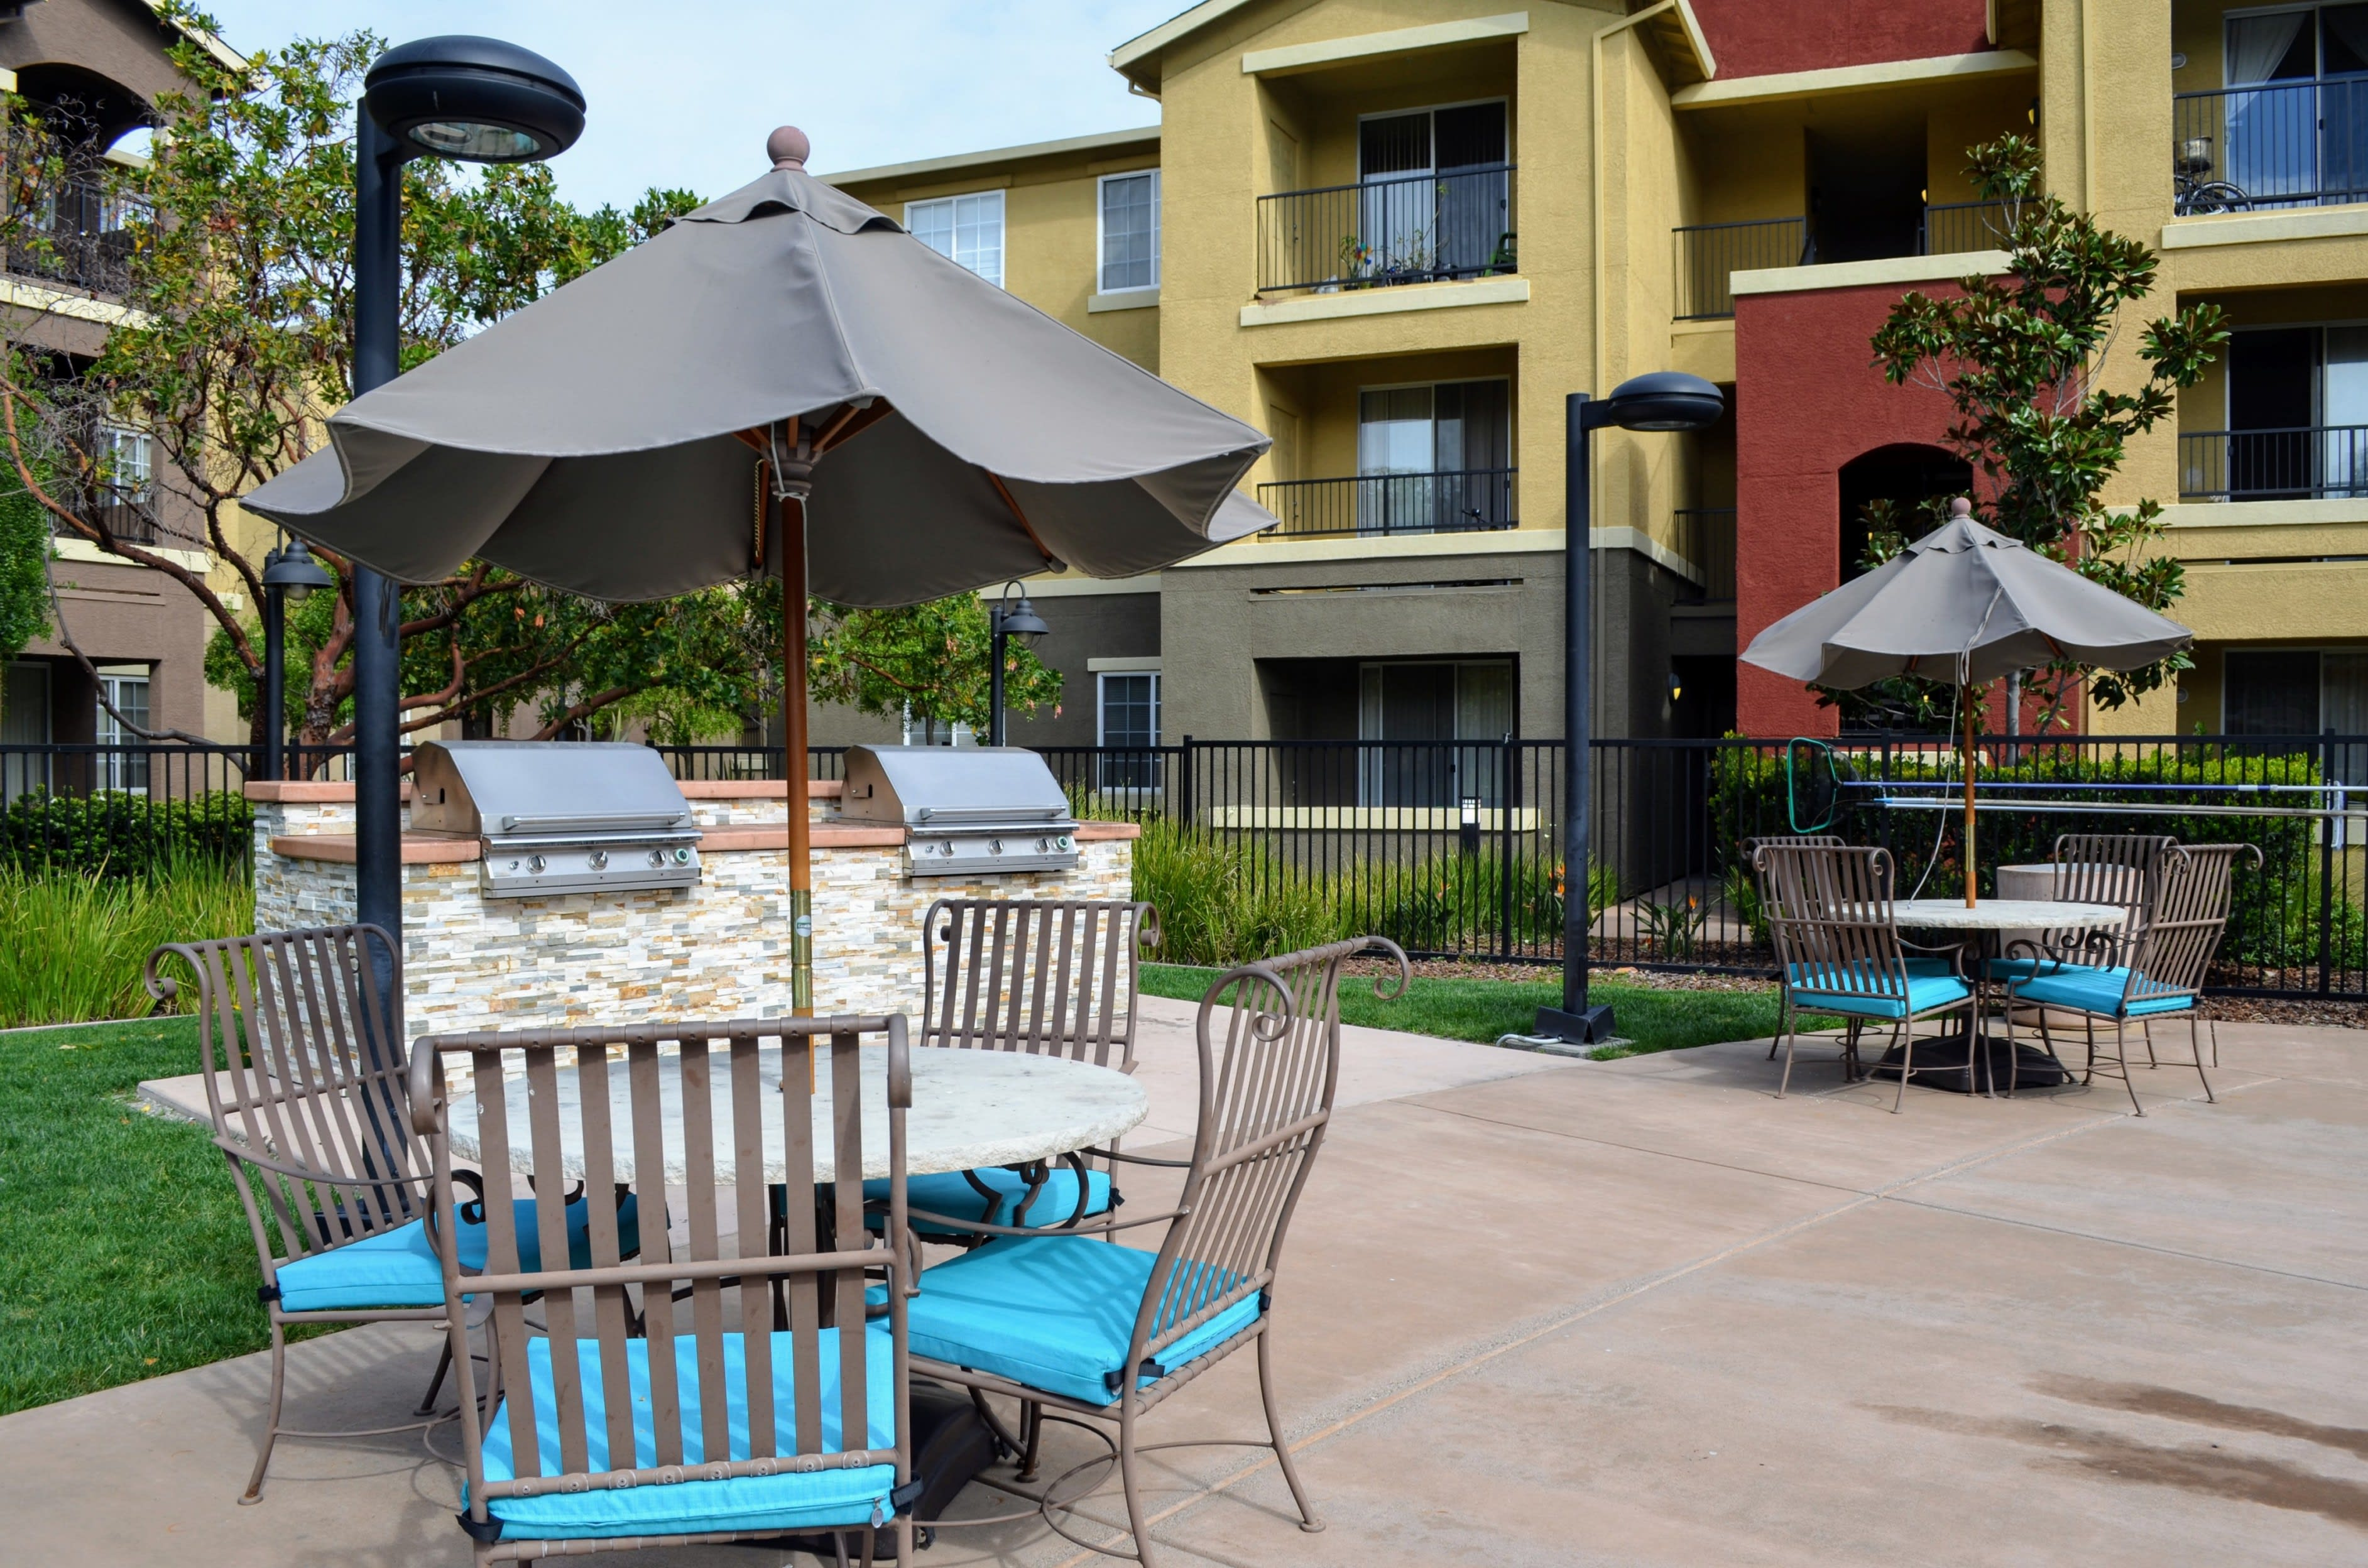 Outdoor Grilling and Dining Area at Sterling Village Apartment Homes, Vallejo, California